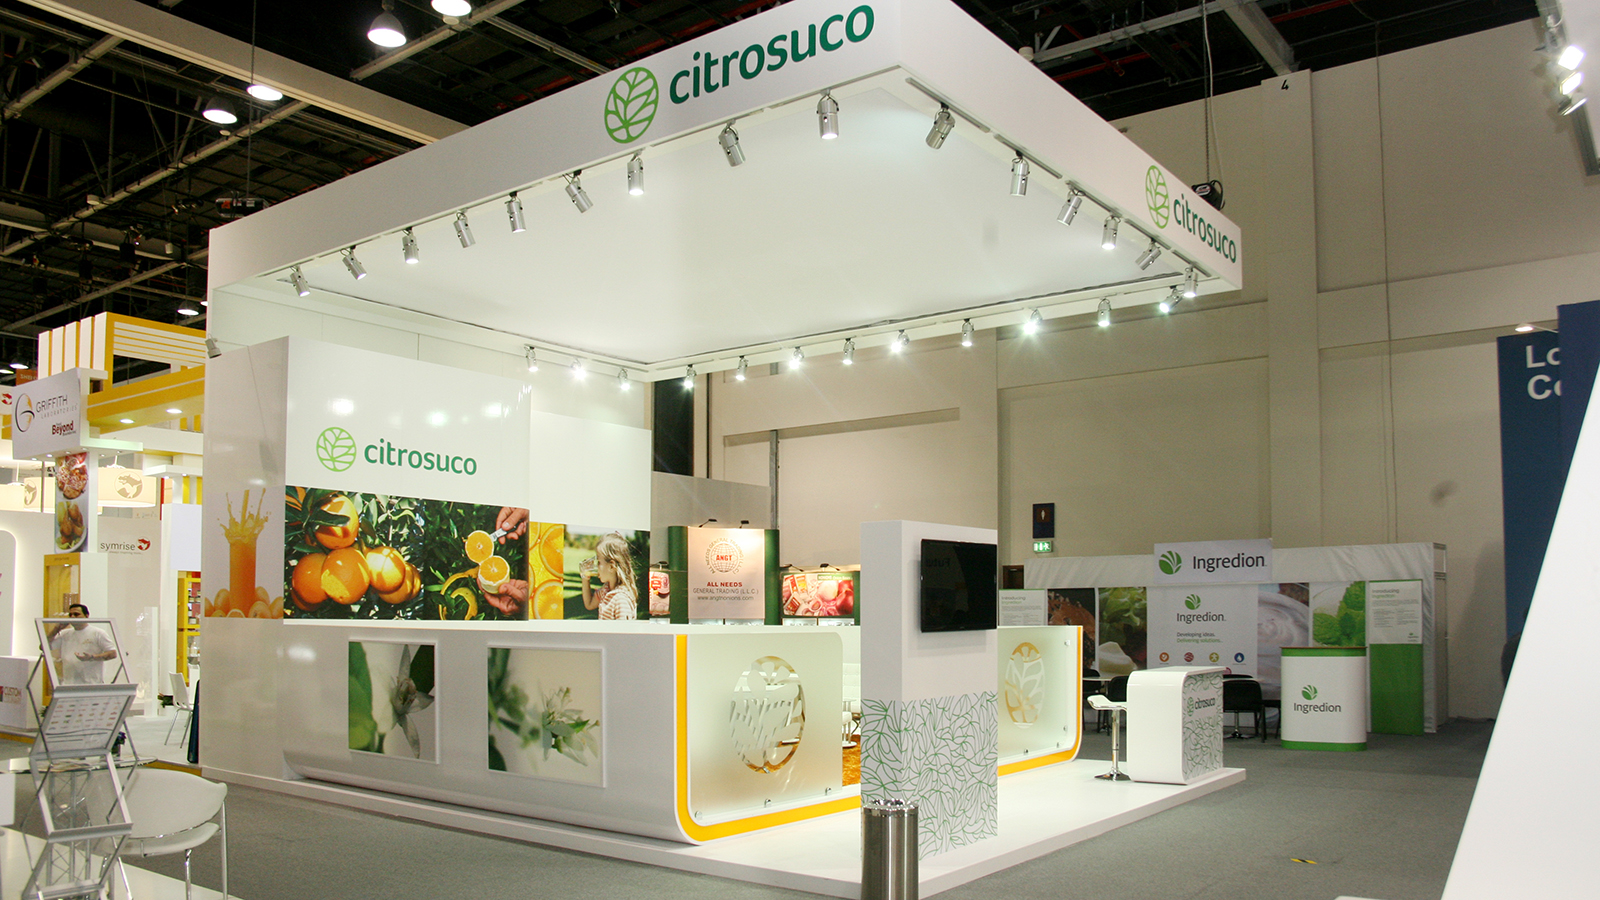 Citrosuco<br>48 m²<br>Gulfood in Dubai